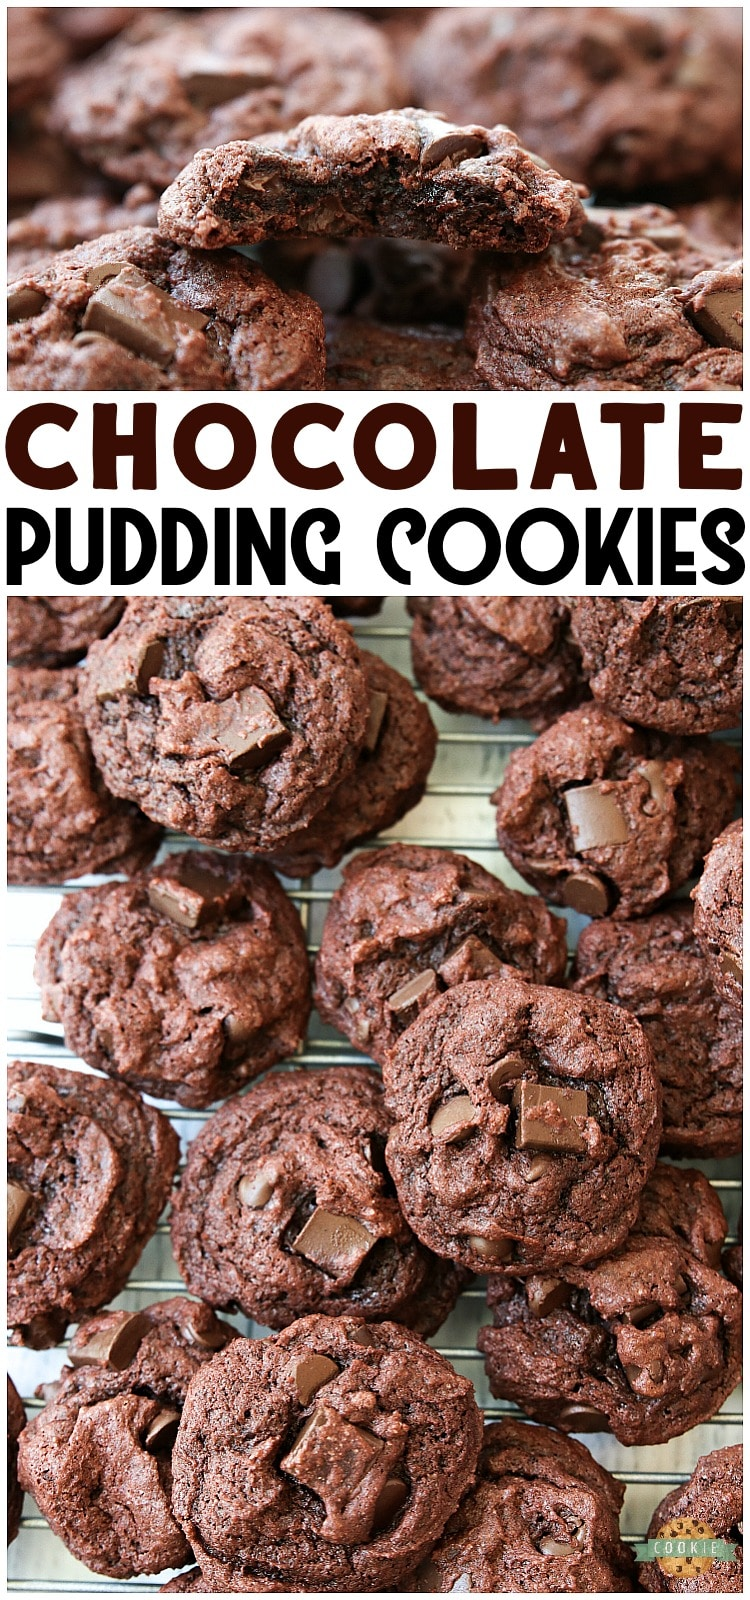 Double Chocolate Pudding Cookies made with chocolate pudding mix for soft, sweet cookies with incredible chocolate flavor! Best cookies for chocolate lovers for sure. via @familycookierecipes